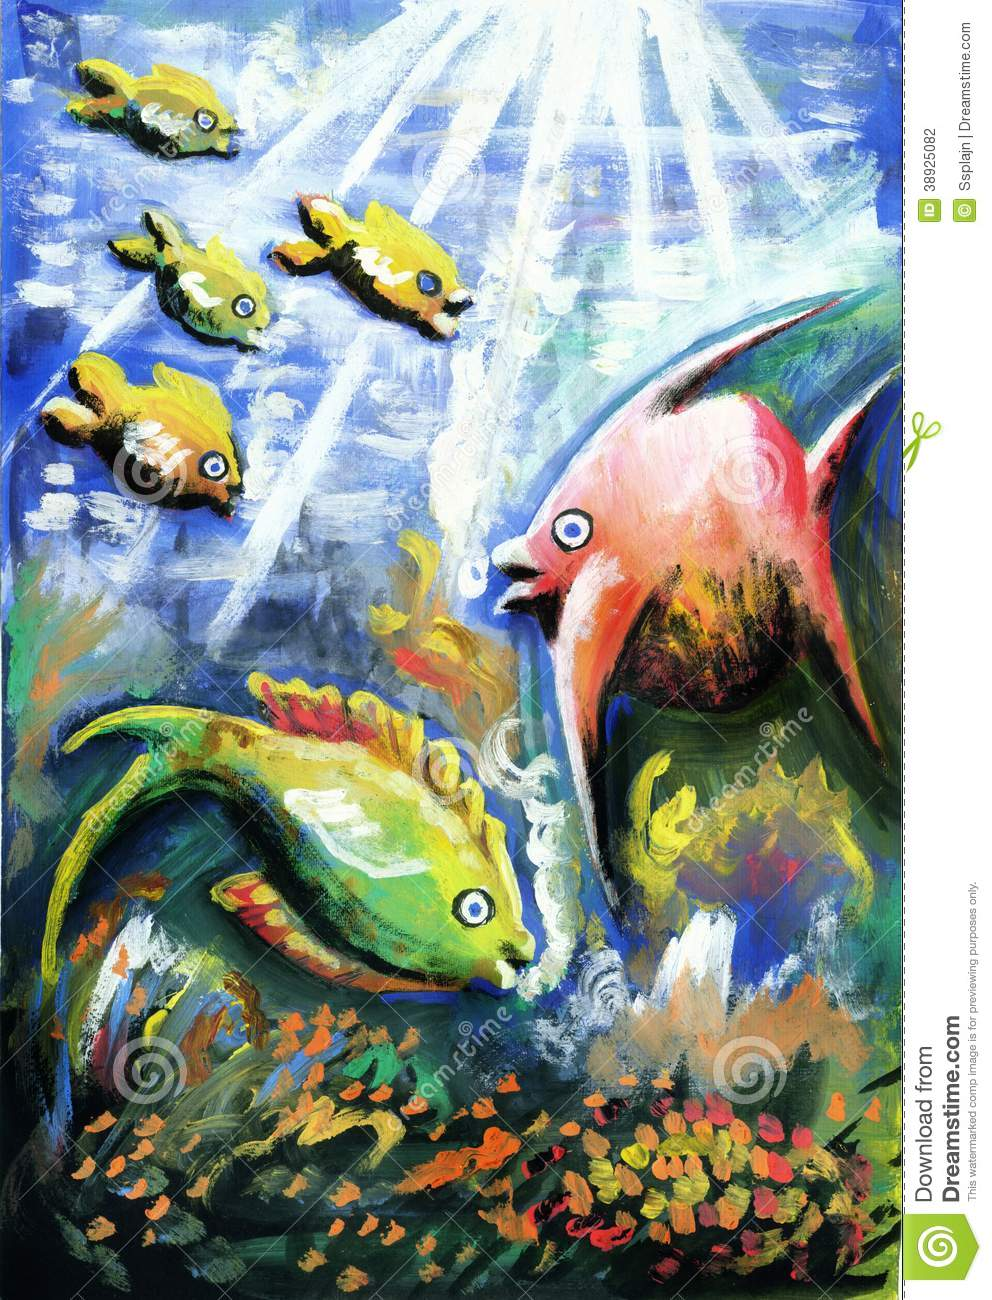 Colorful Marine Life Underwater On The Seabed Stock Photo ... |Colorful Underwater Life